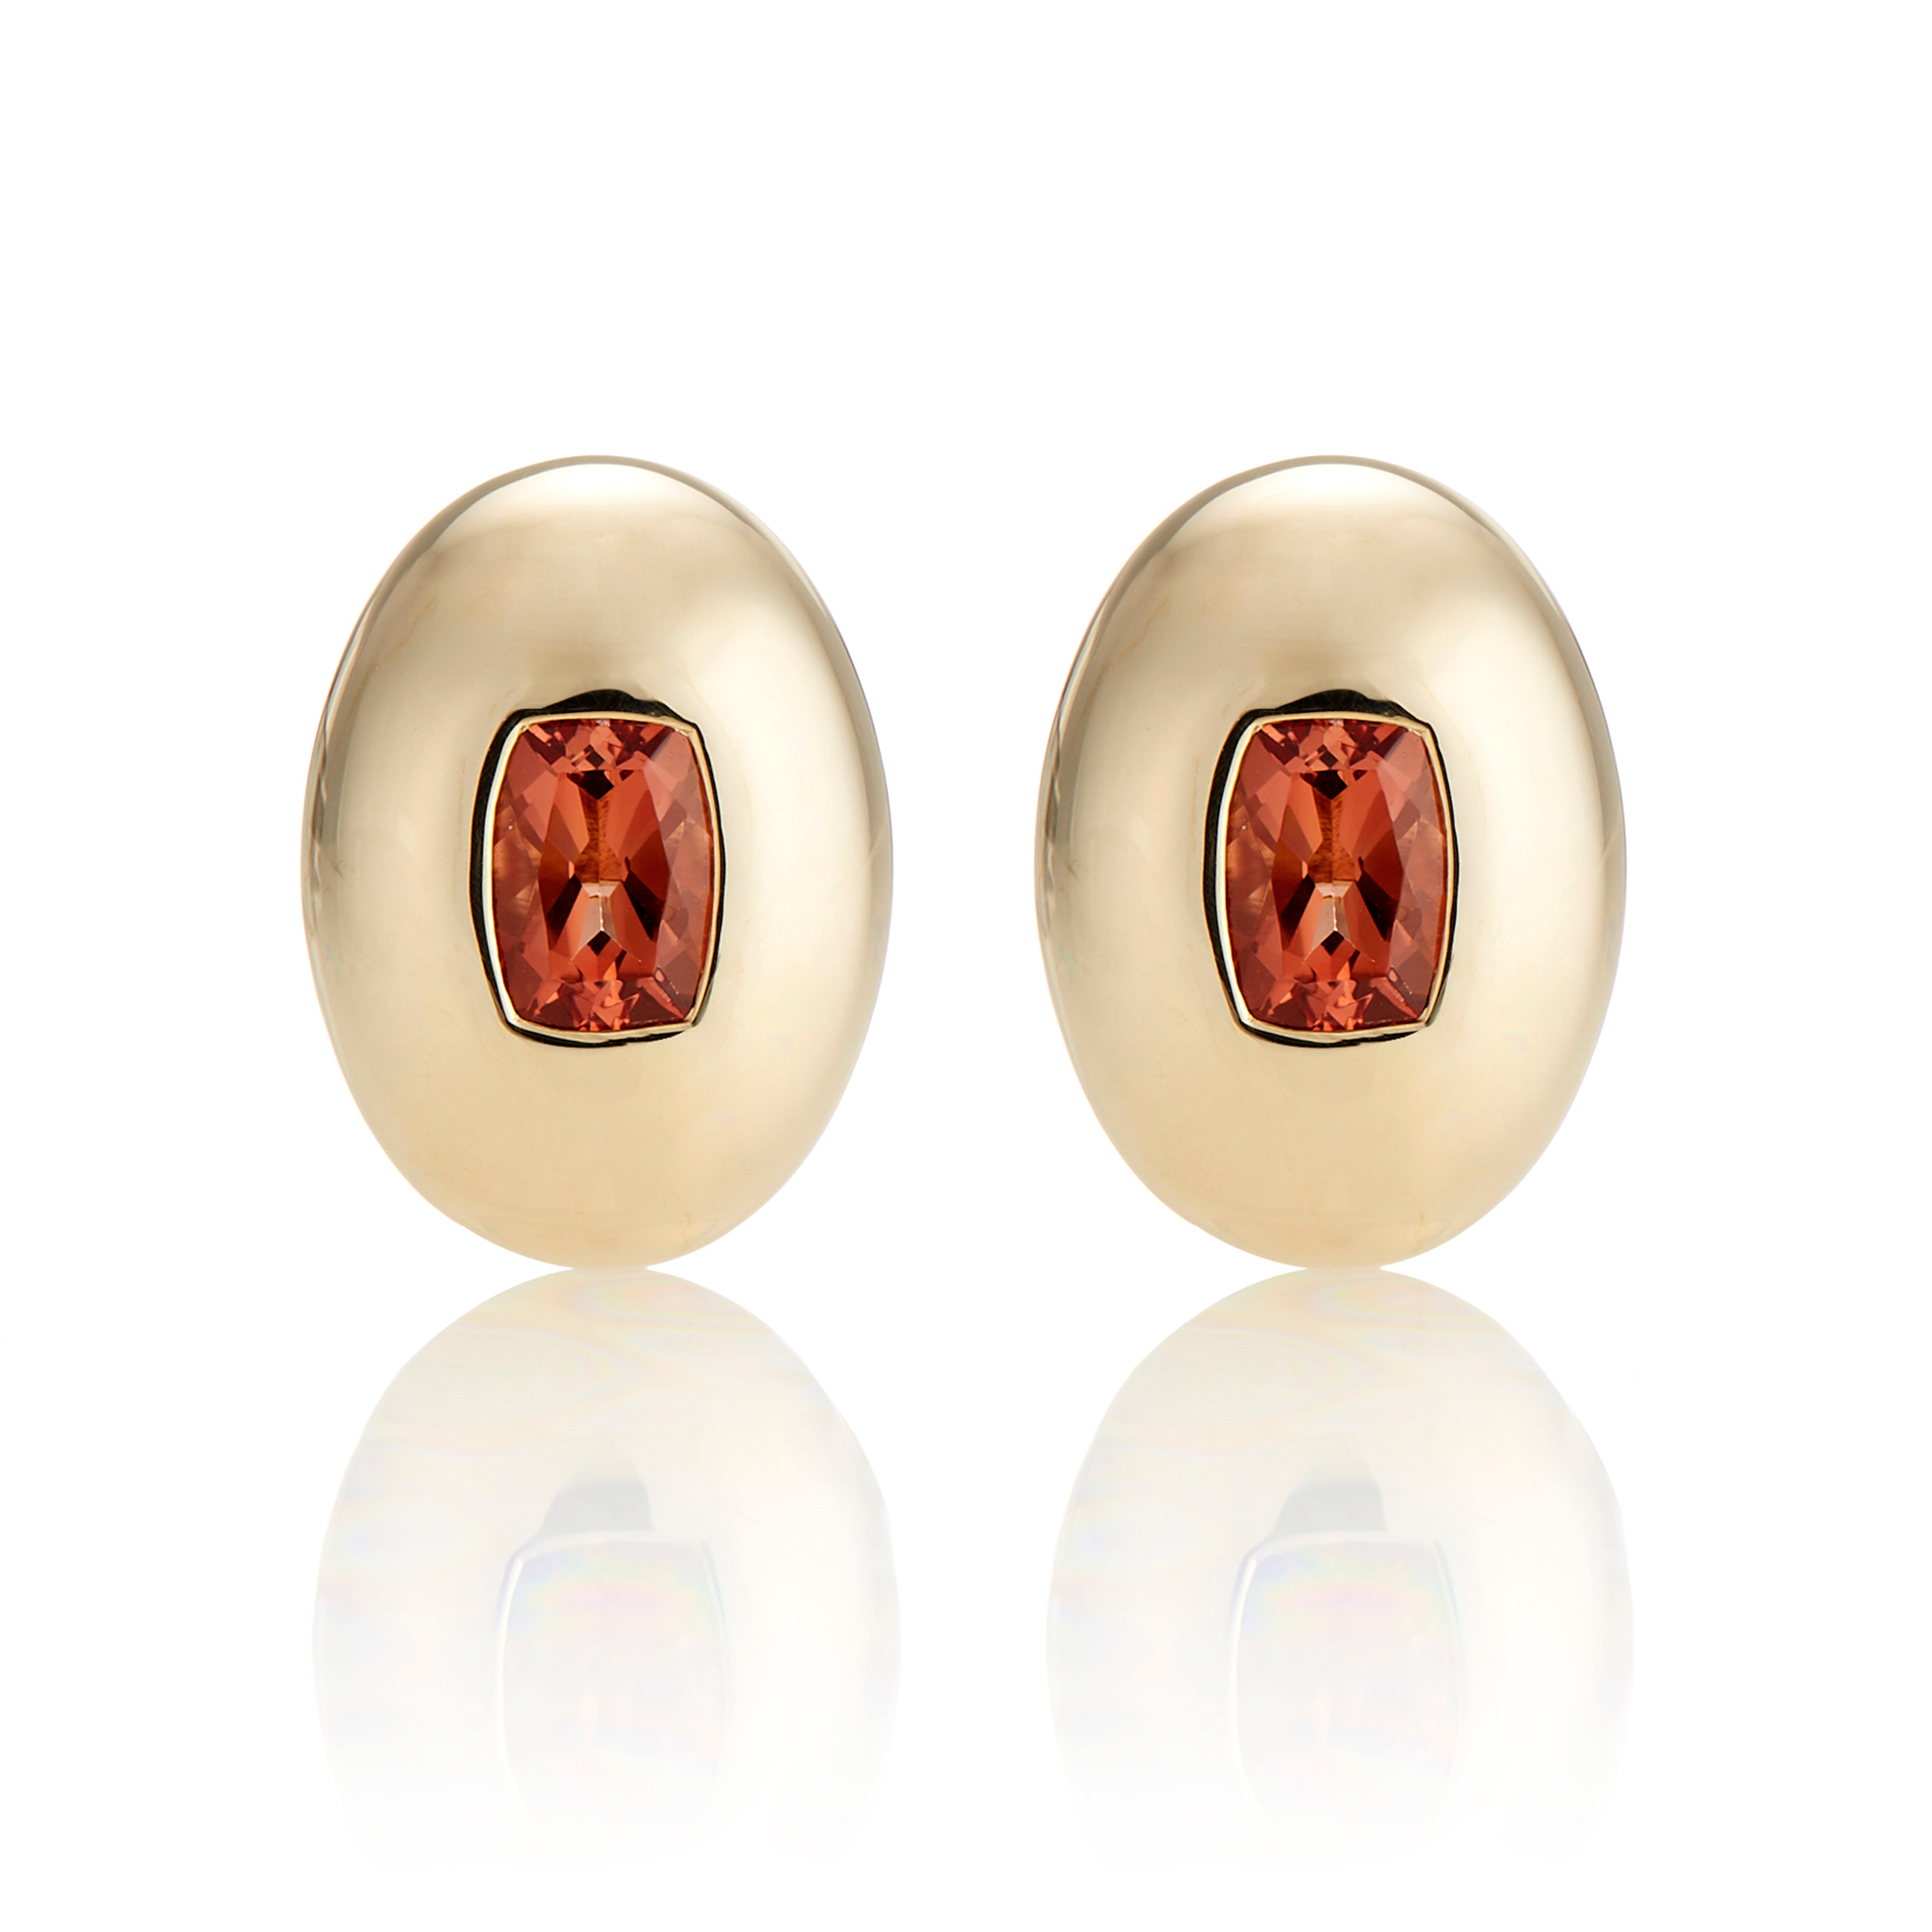 Gump's Gump's Oval Orange Andesine Earrings